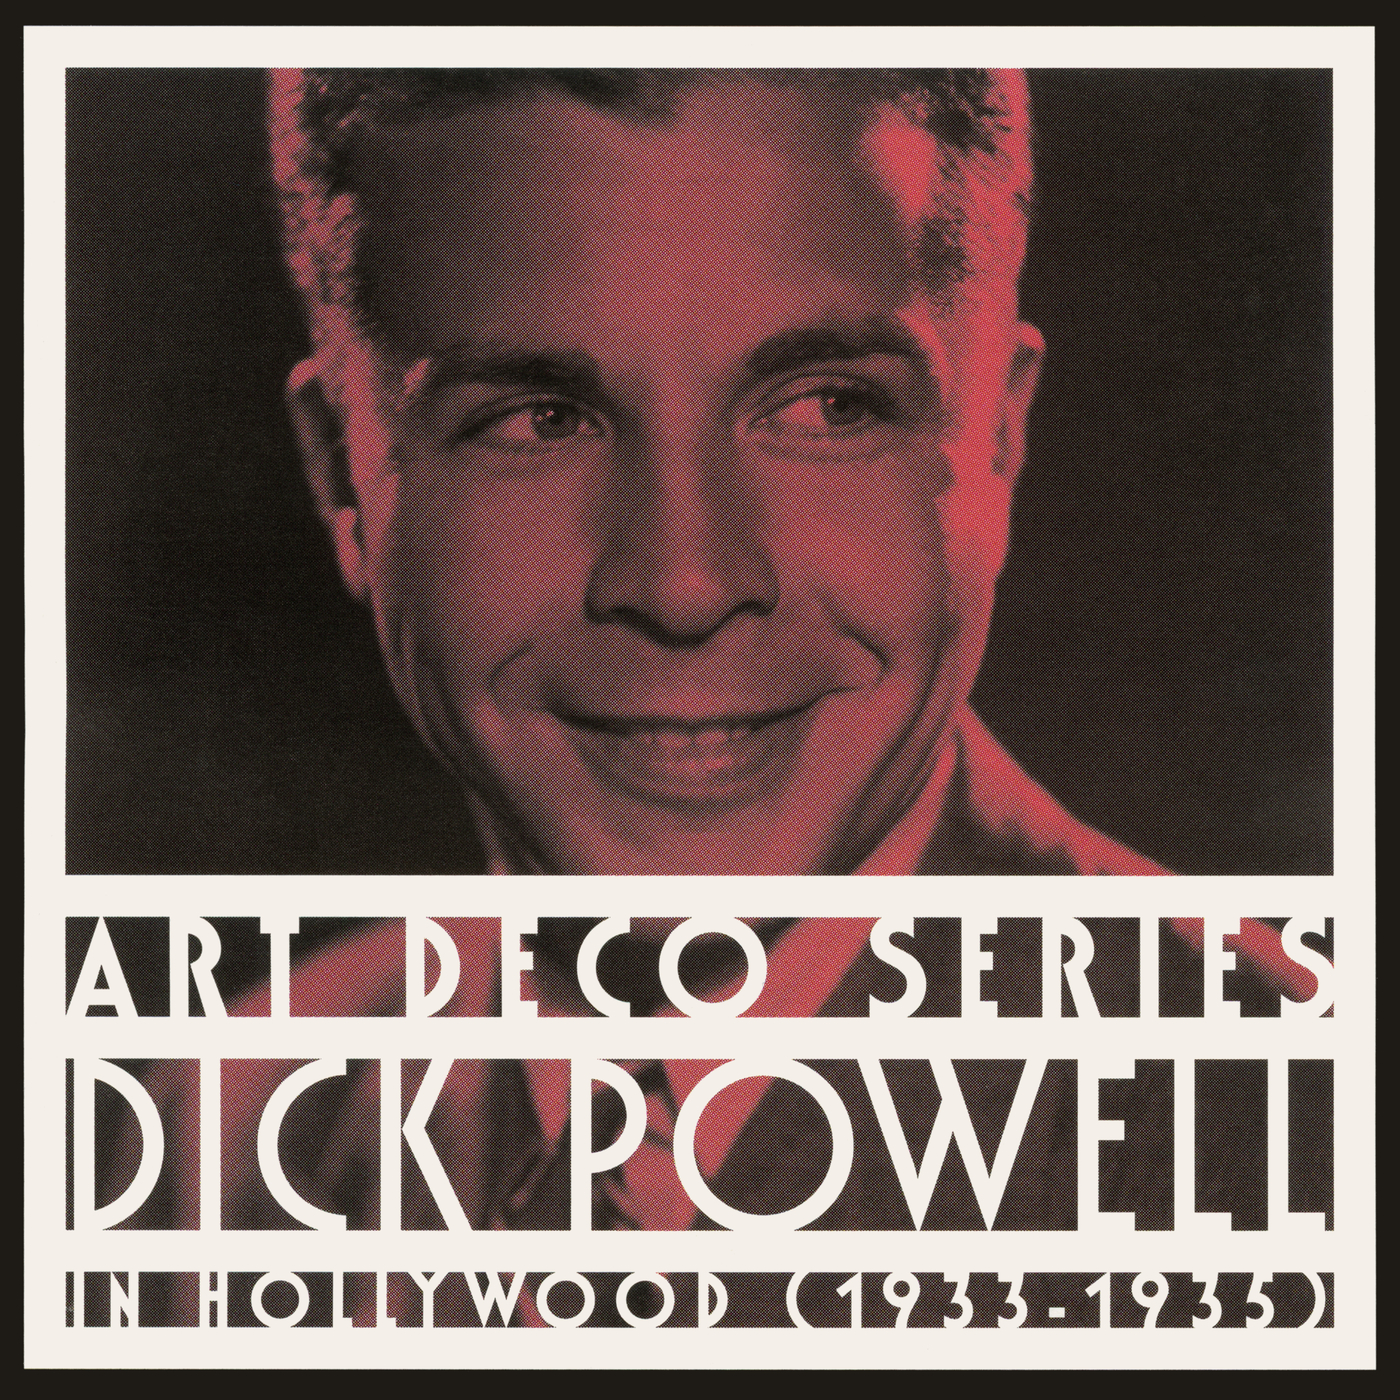 In Hollywood (1933-1935) - Dick Powell